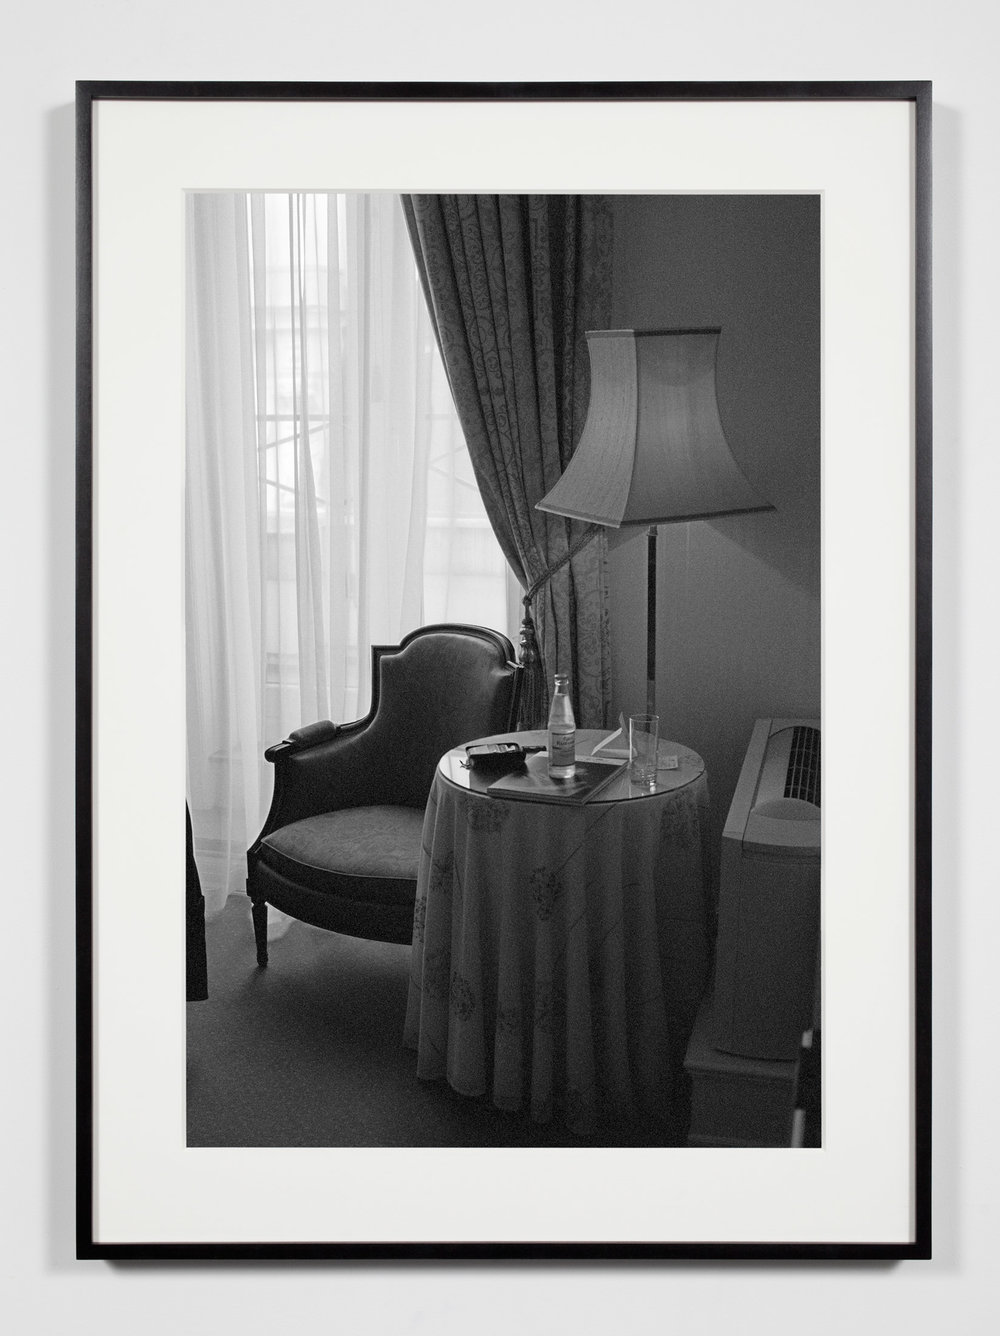 Hotel Room, Copenhagen, Denmark, May 15, 2010   2011  Epson Ultrachrome K3 archival ink jet print on Hahnemühle Photo Rag paper  36 3/8 x 26 3/8 inches   Industrial Portraits, 2008–    A Diagram of Forces, 2011